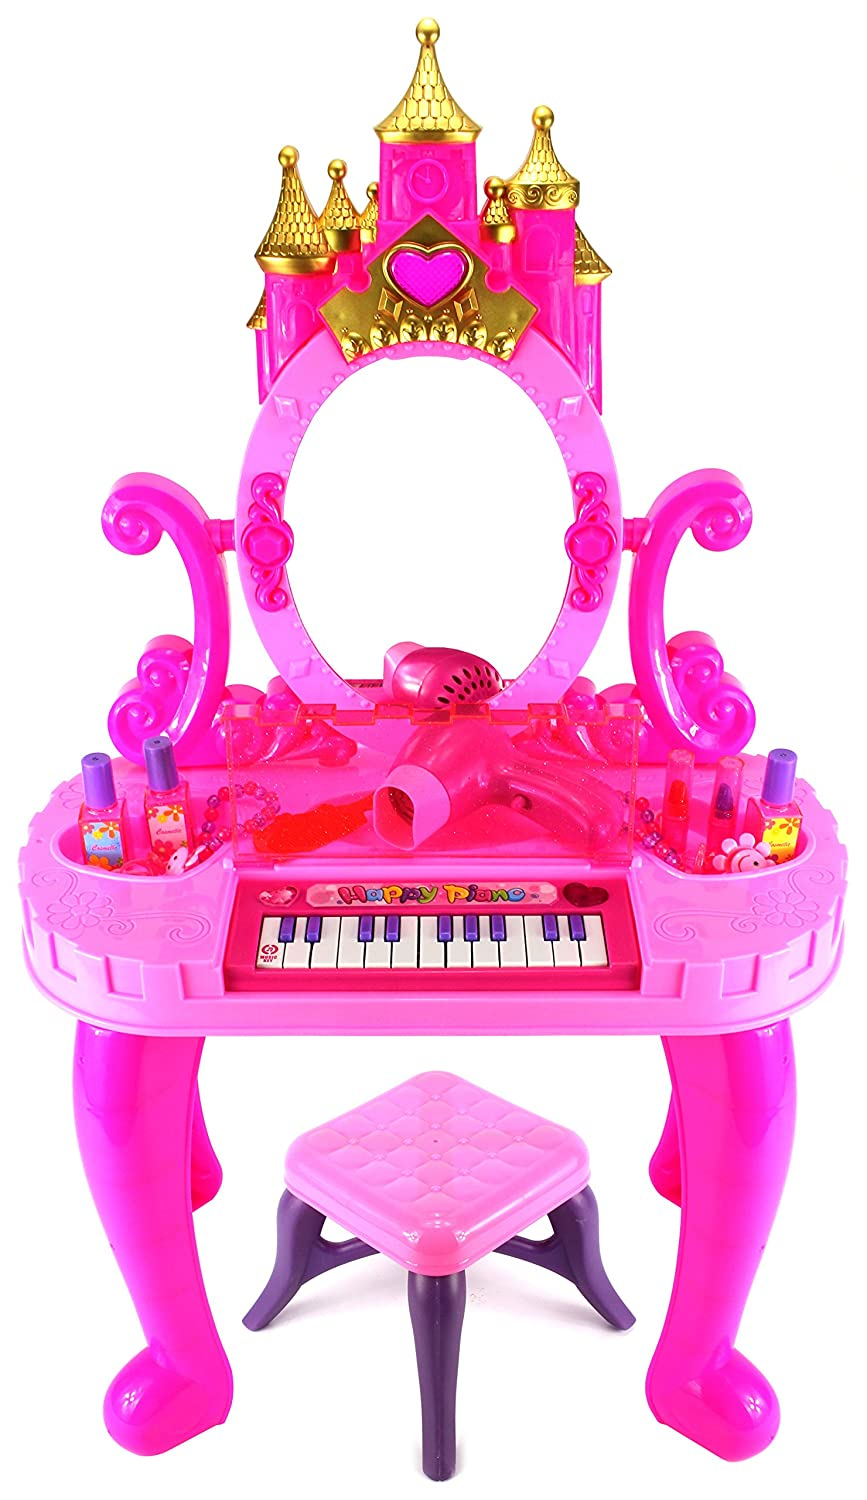 Buy Sunshine Dressing Table Cum Piano With Stool   Music And Lights, Best  Toy For Girls Online At Low Prices In India   Amazon.in